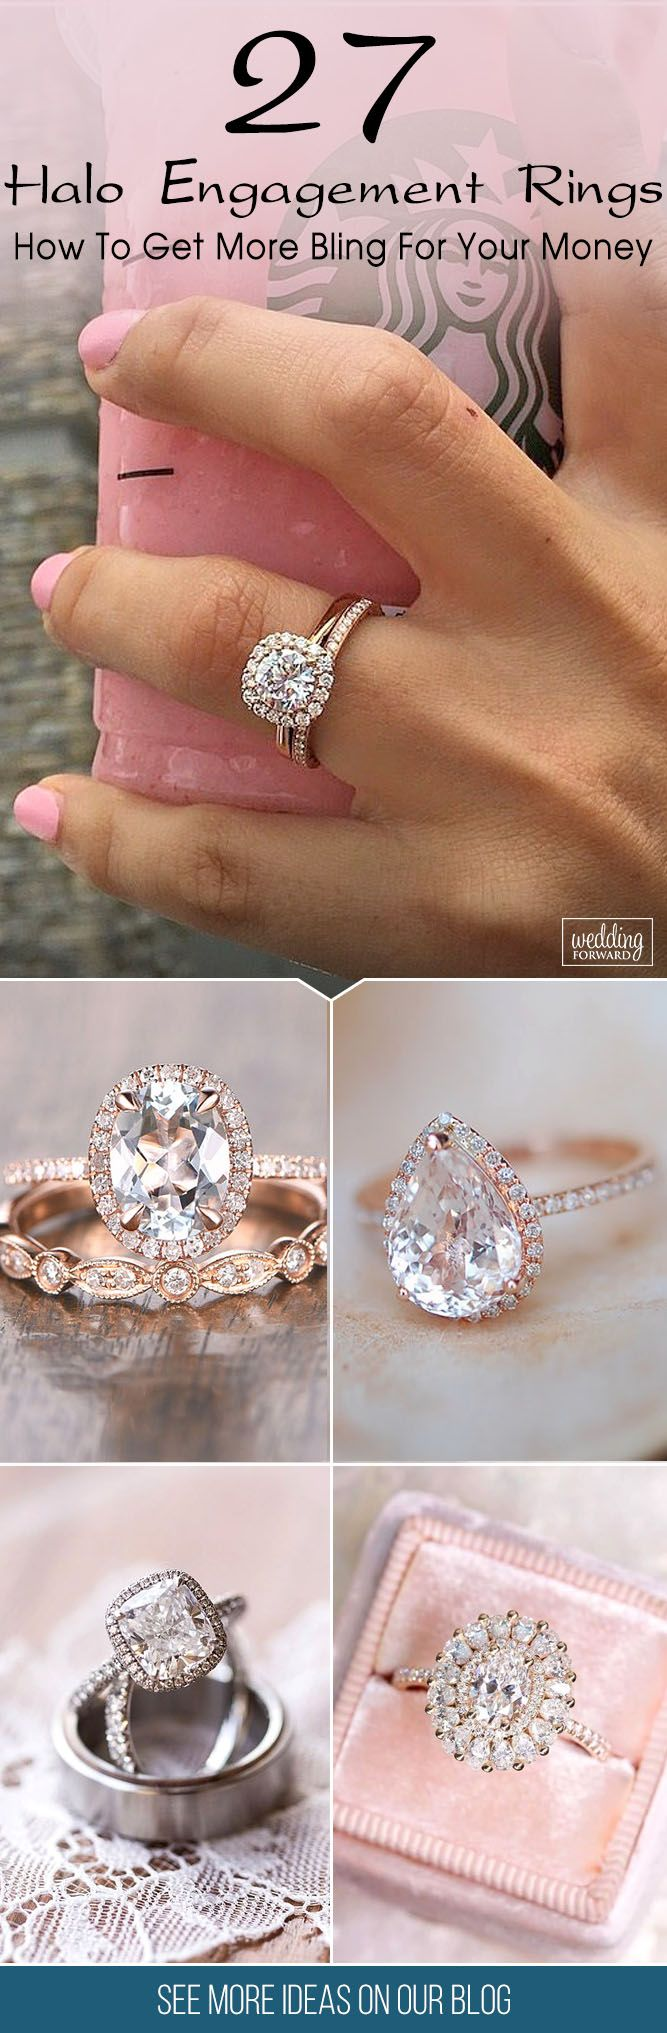 27 Halo Engagement Rings Or How To Get More Bling For Your Money ❤ Halo engagement rings are popular among of bridal jewelry and have gorgeous look on her hand. See more: http://www.weddingforward.com/halo-engagement-rings/ #wedding #engagement #rings